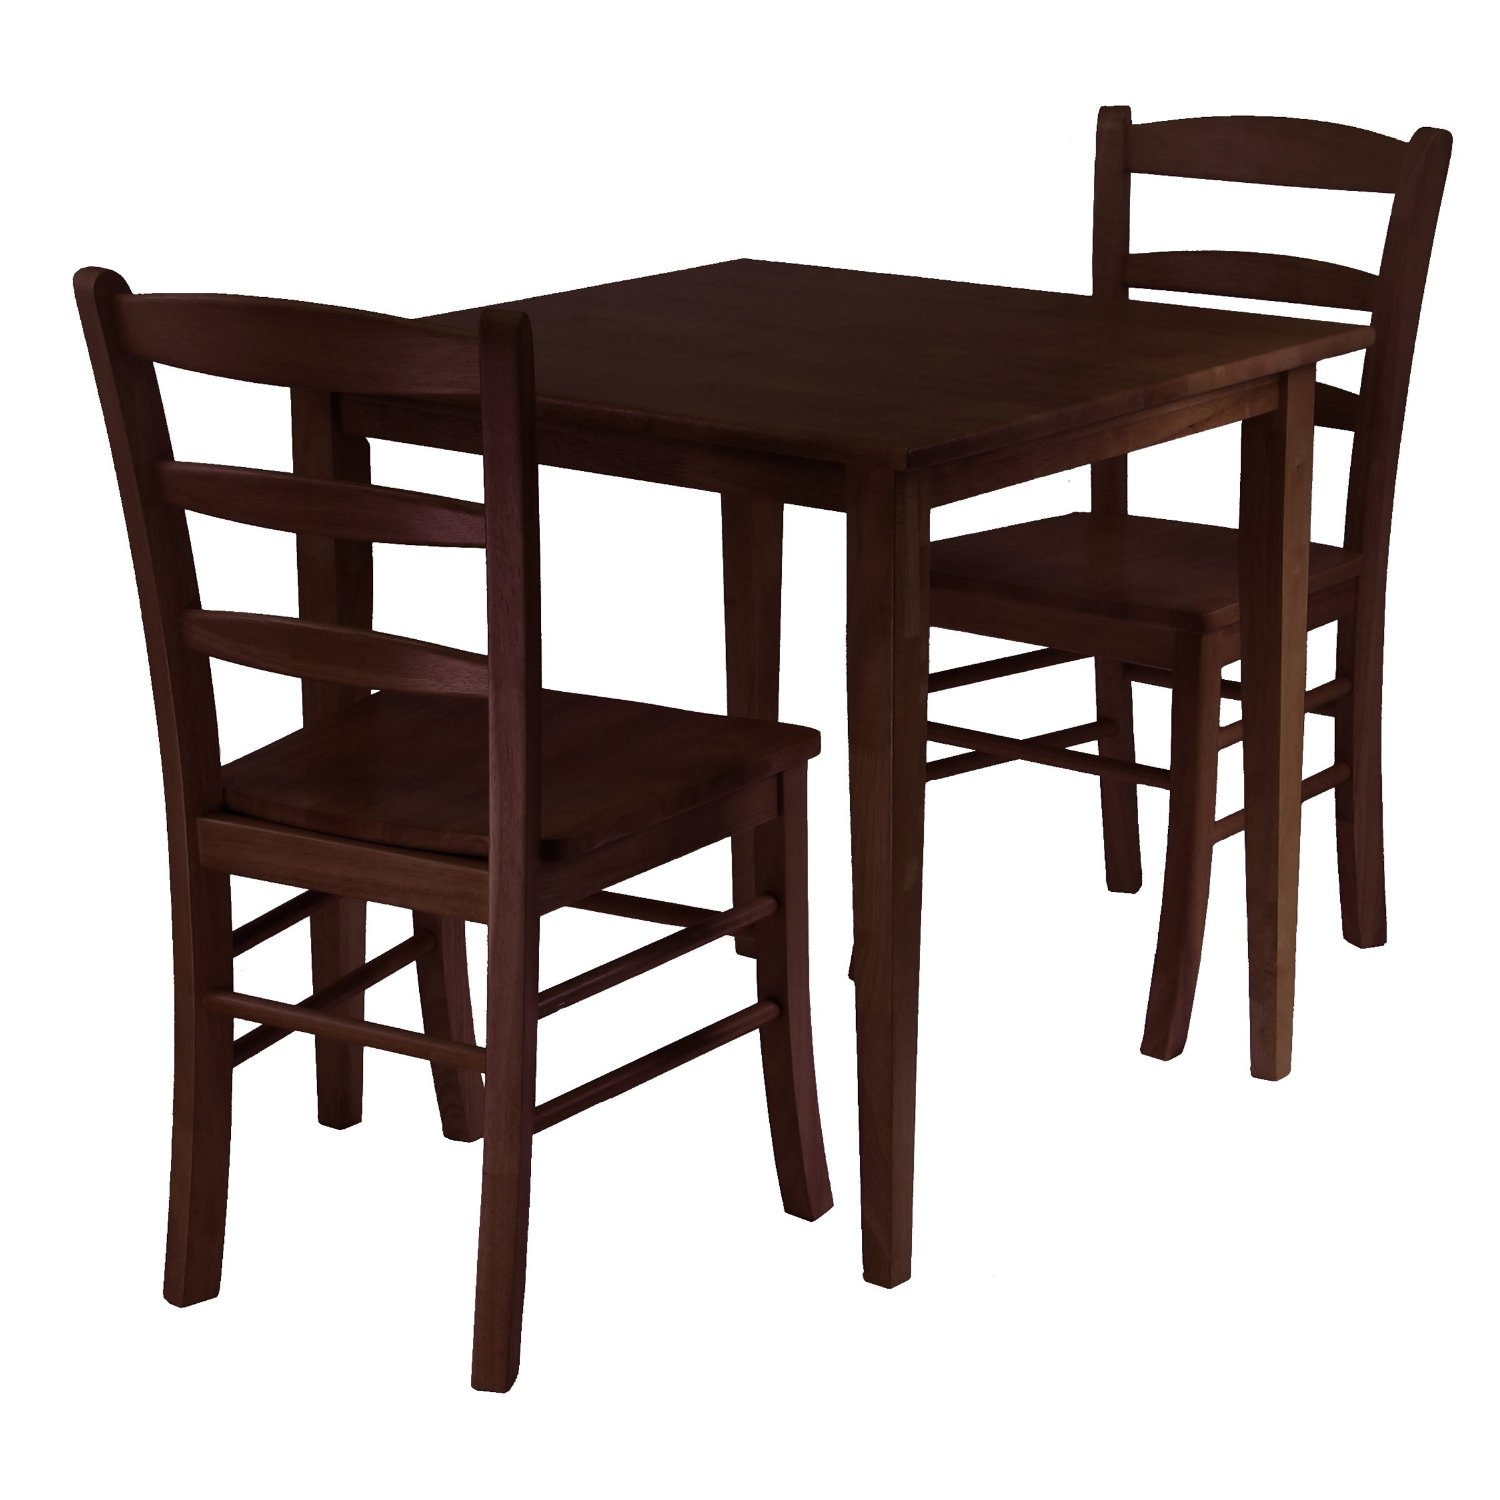 Small dinette set design homesfeed for Small dining room tables